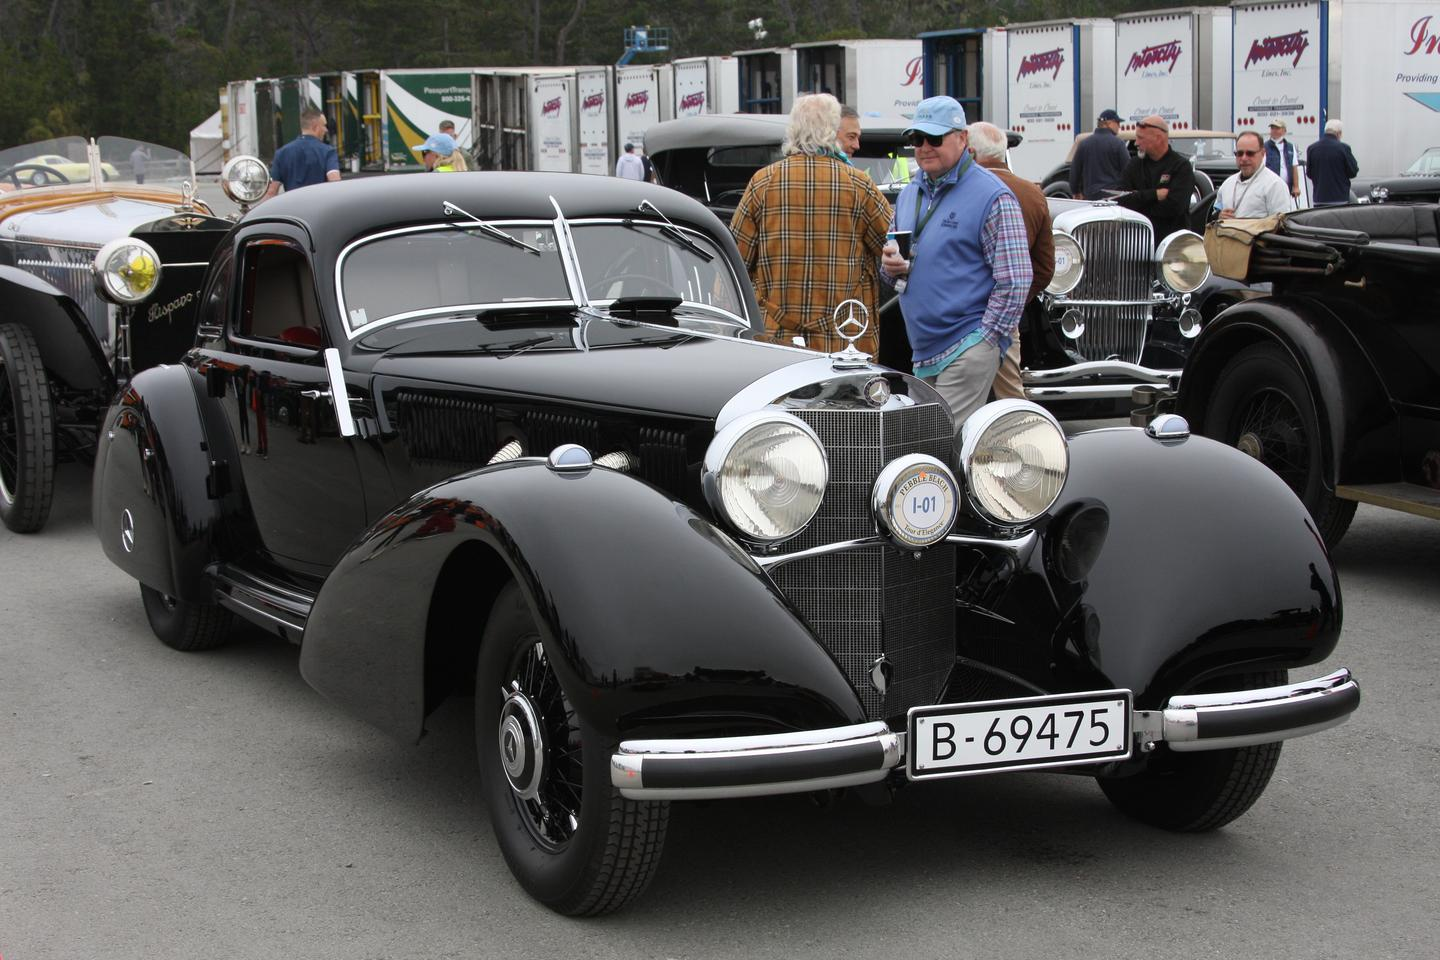 Best Of Show at the 2021 Pebble Beach Concours d'Elegance was this 1938 Mercedes-Benz 540K Autobahn Kurier from The Keller Collection at The Pyramids, Petaluma, California